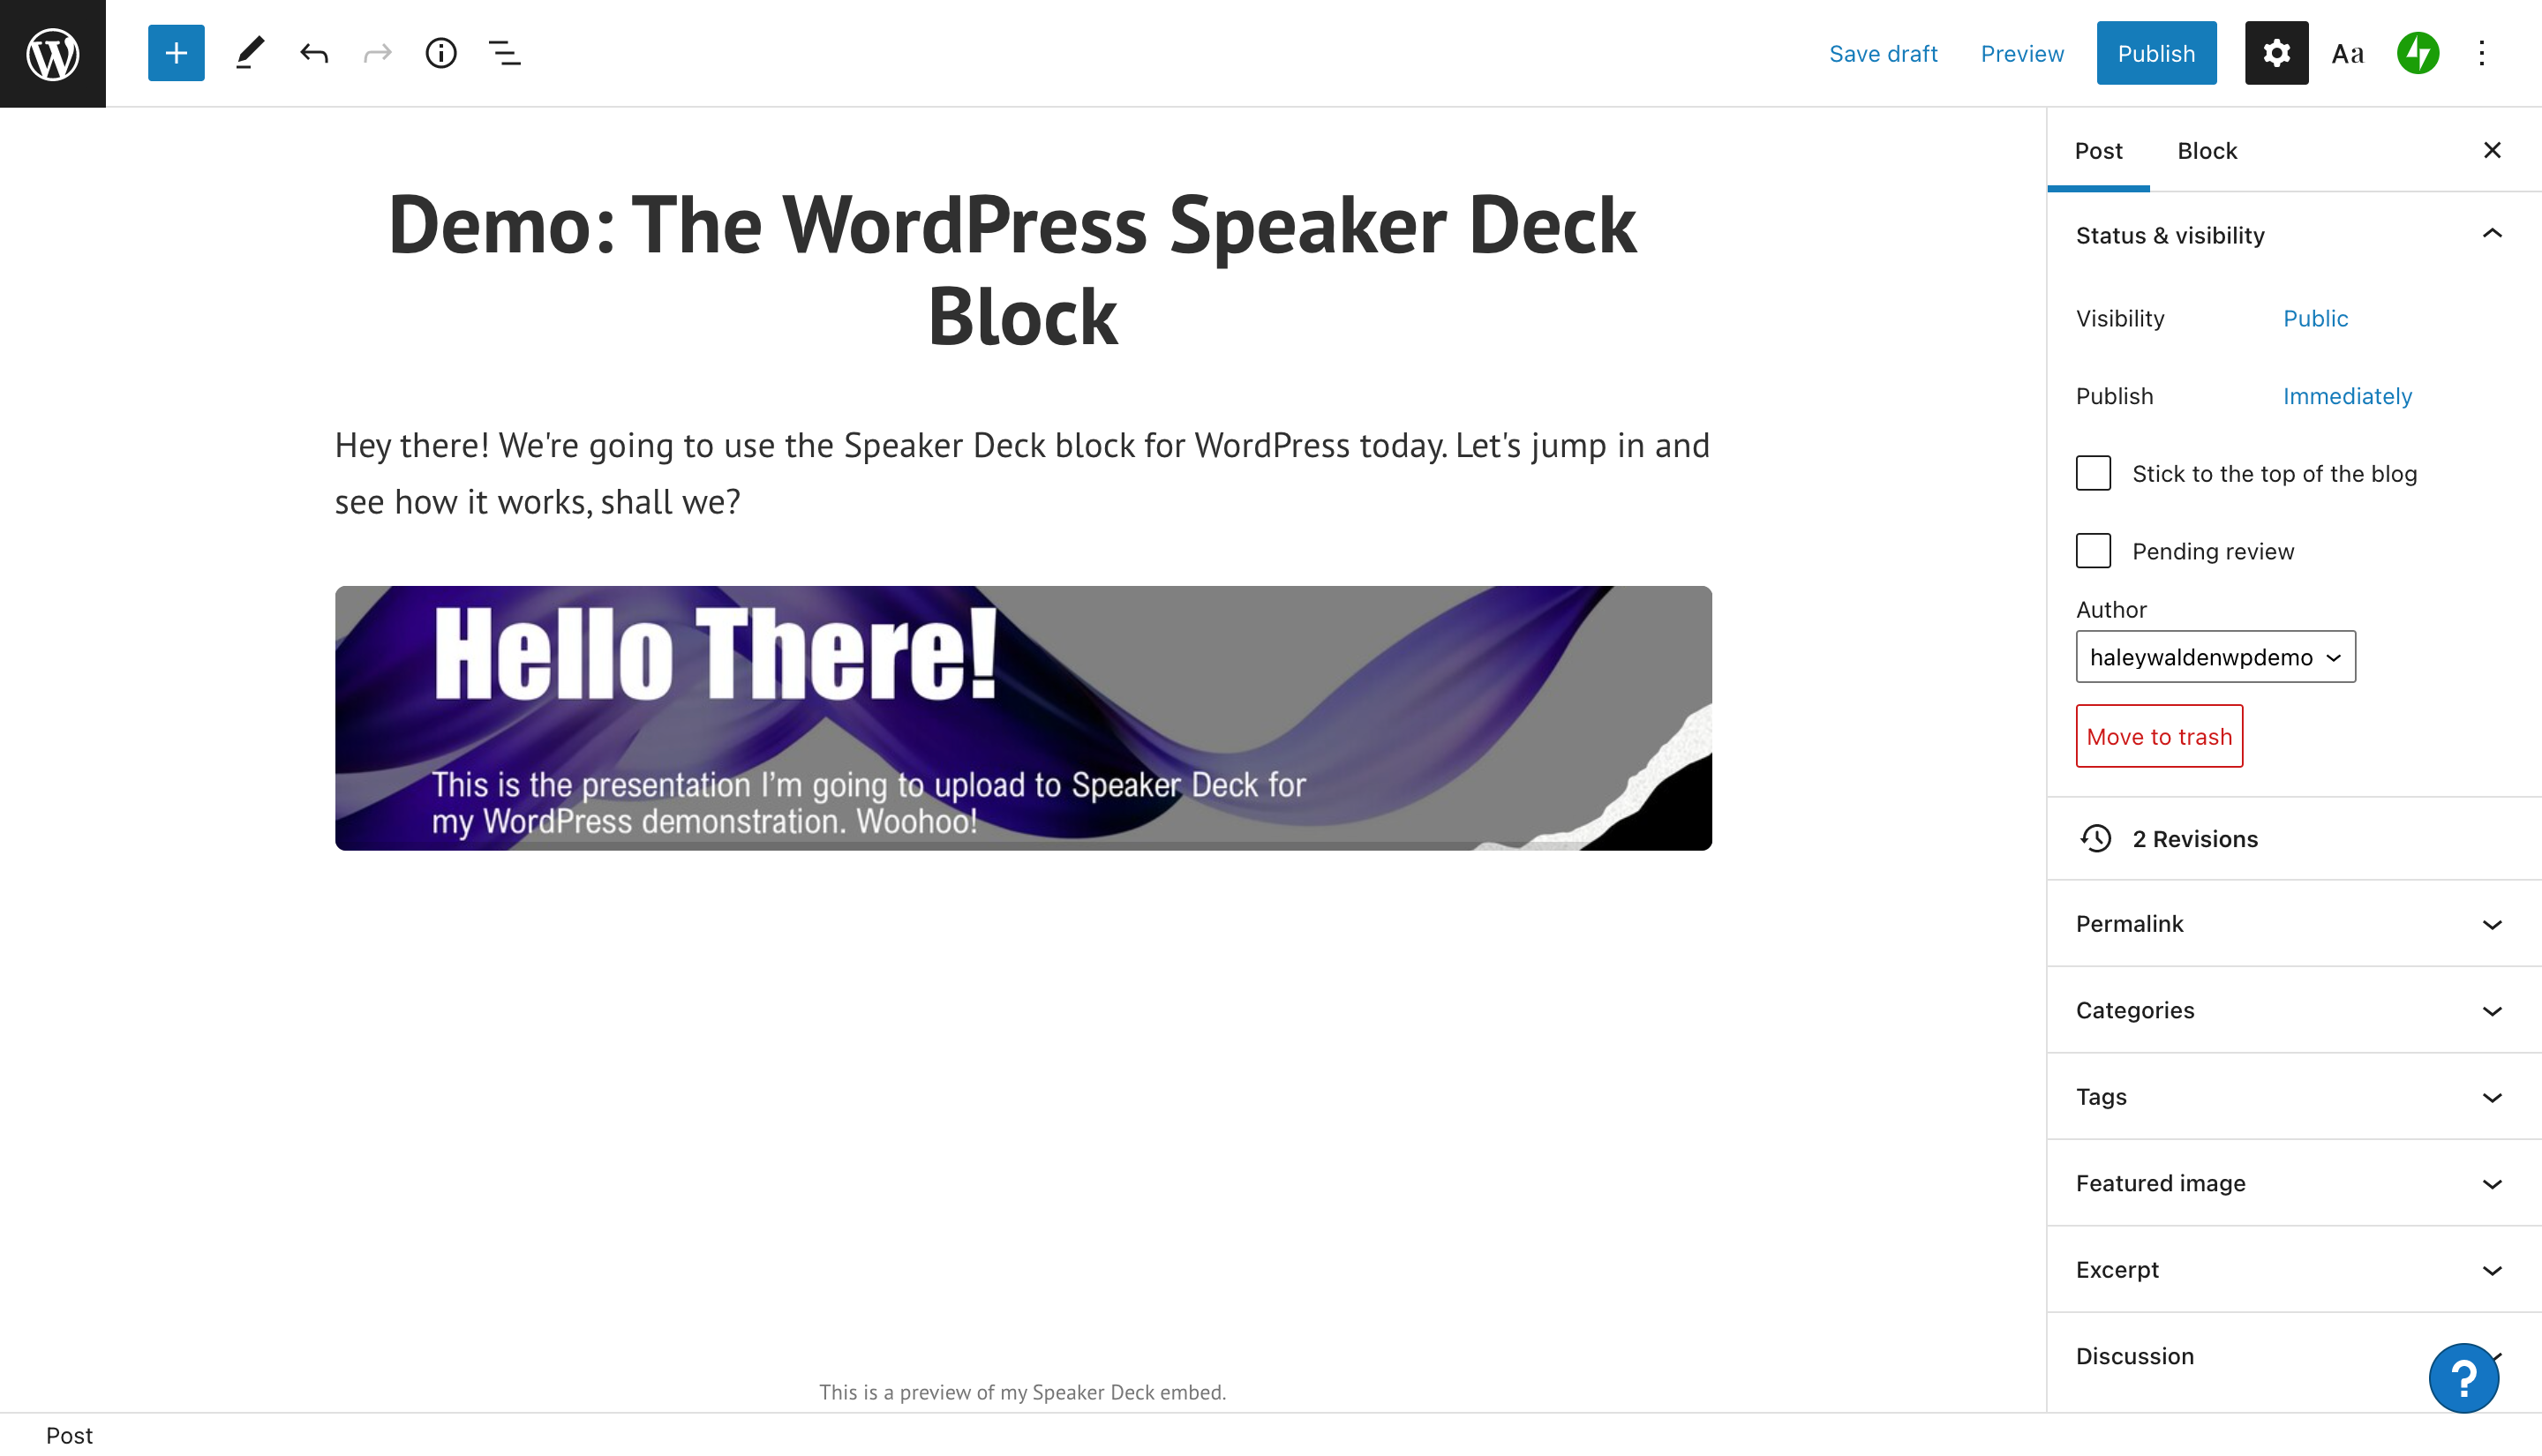 how-to-use-the-wordpress-speaker-deck-embed-block-7 如何使用 WordPress Speaker Deck 嵌入块